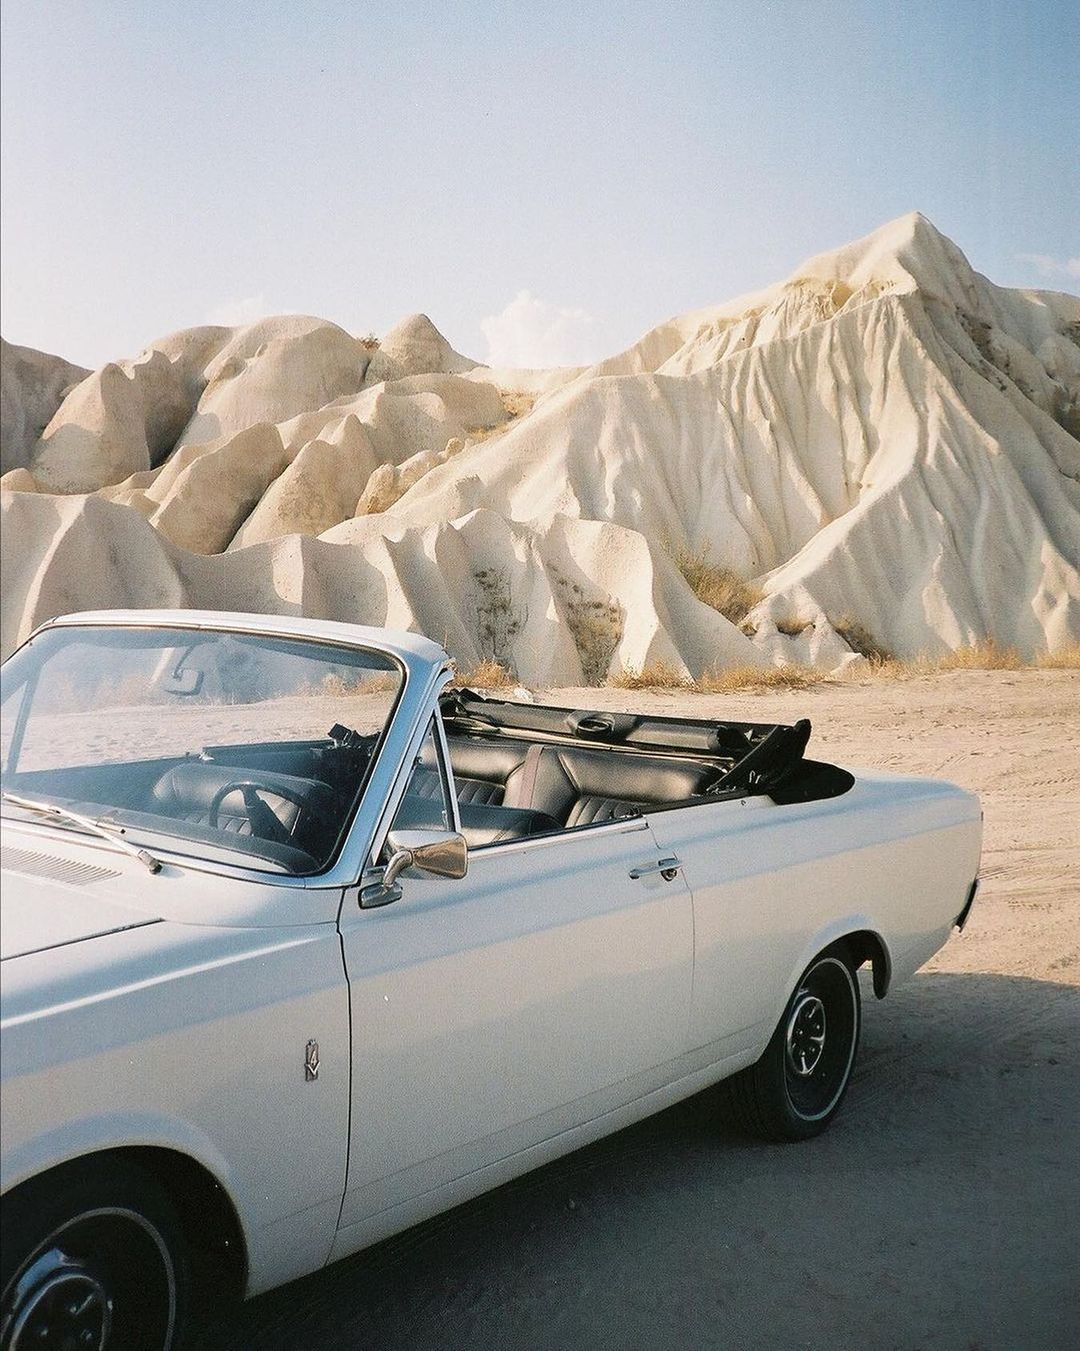 35mm film photo of a white car in the desert